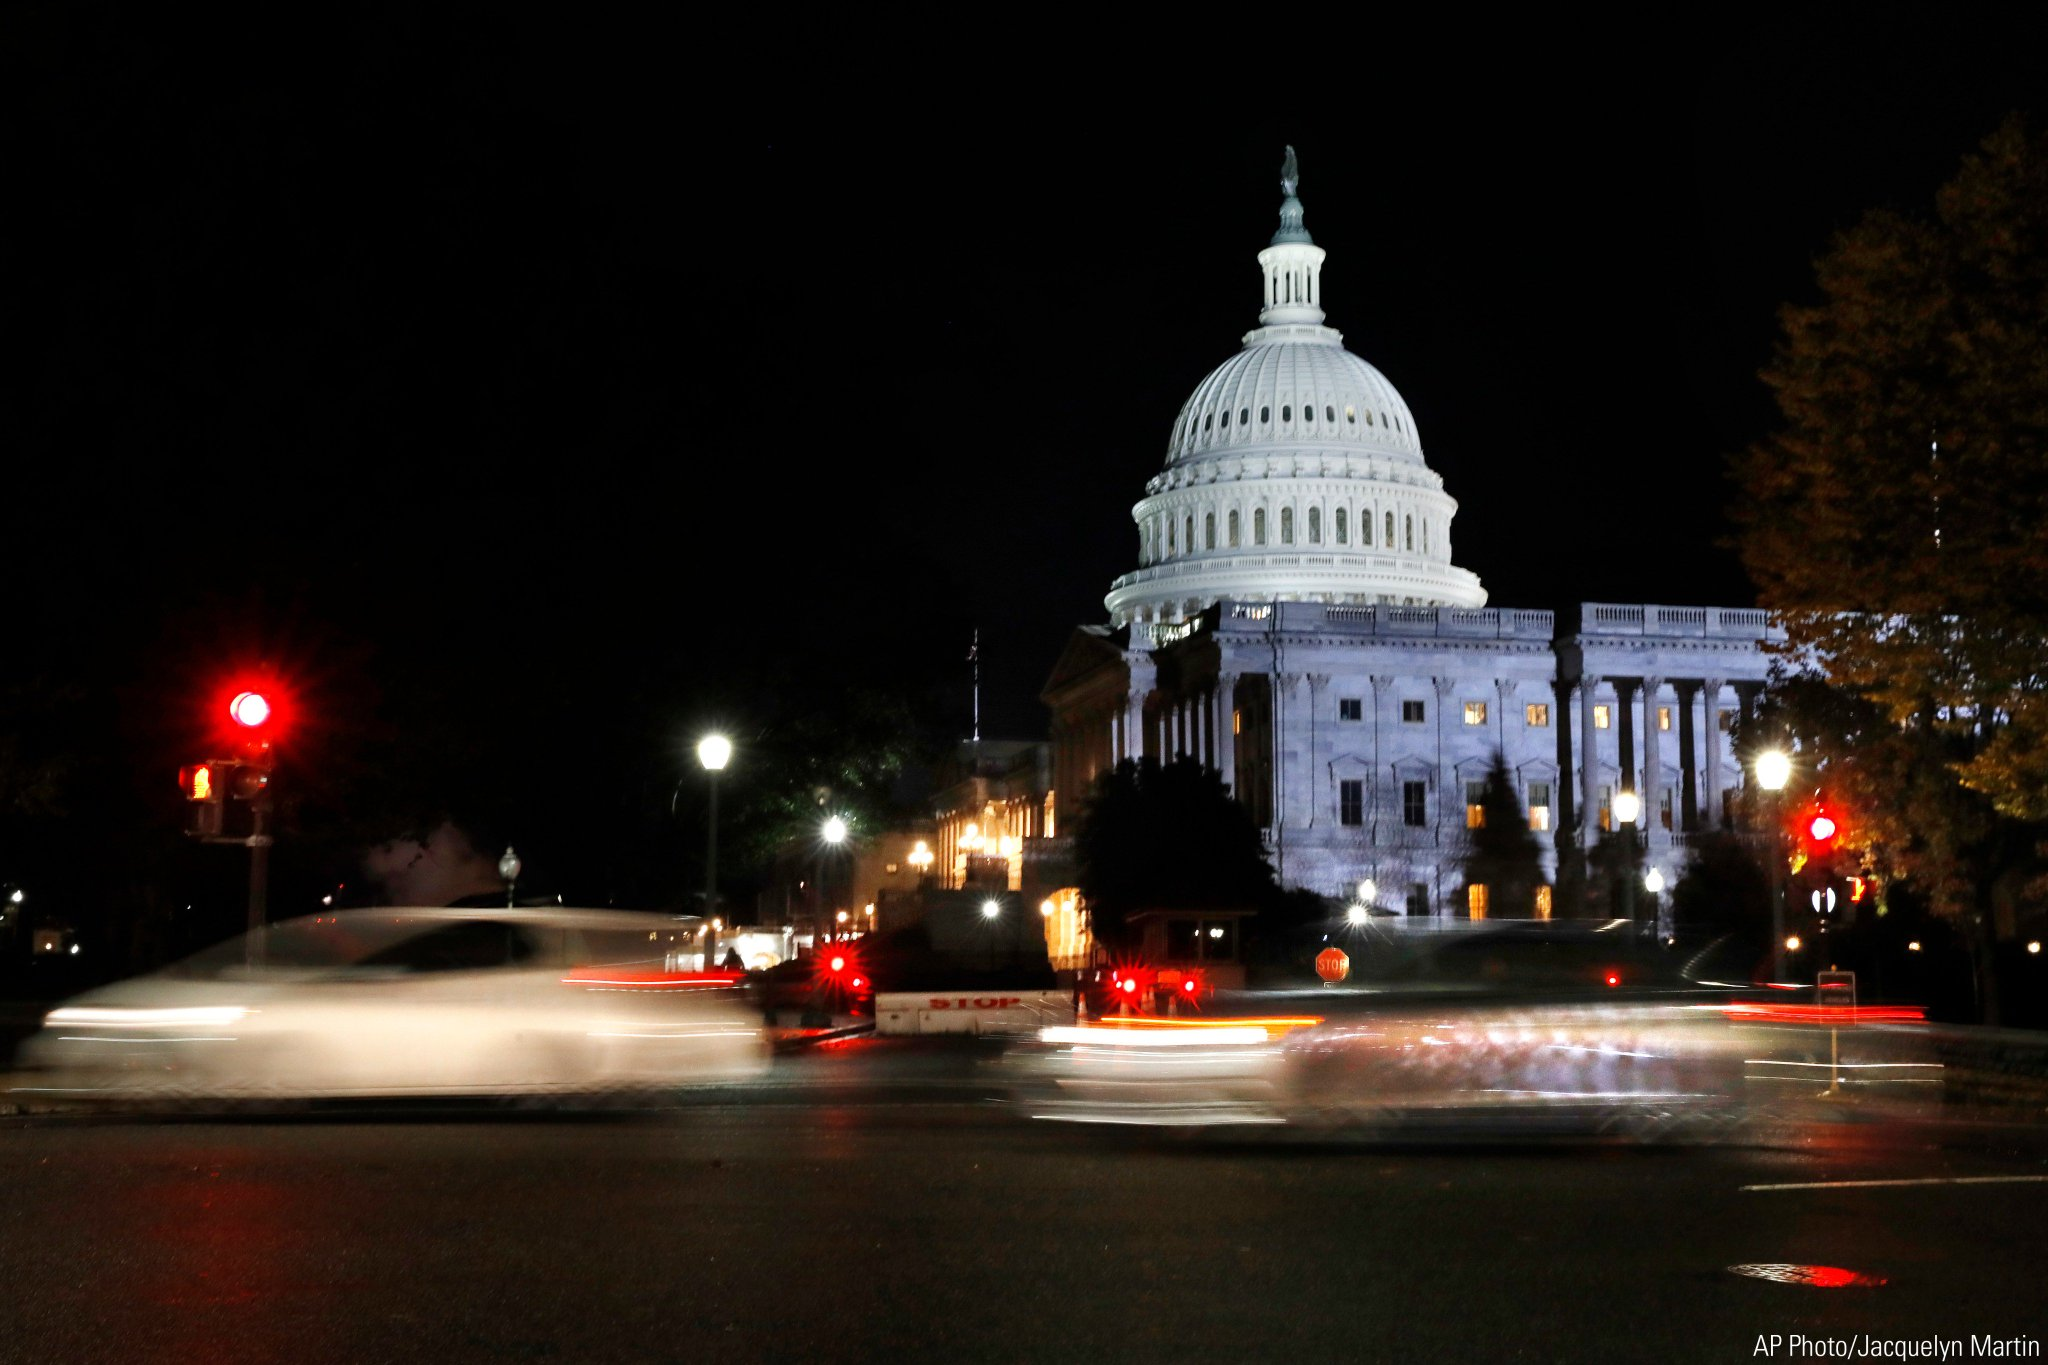 Vehicles pass the U.S. Capitol on election night on Tuesday in Washington, D.C. #Midterms2018 https://t.co/4tXZVy6r5p